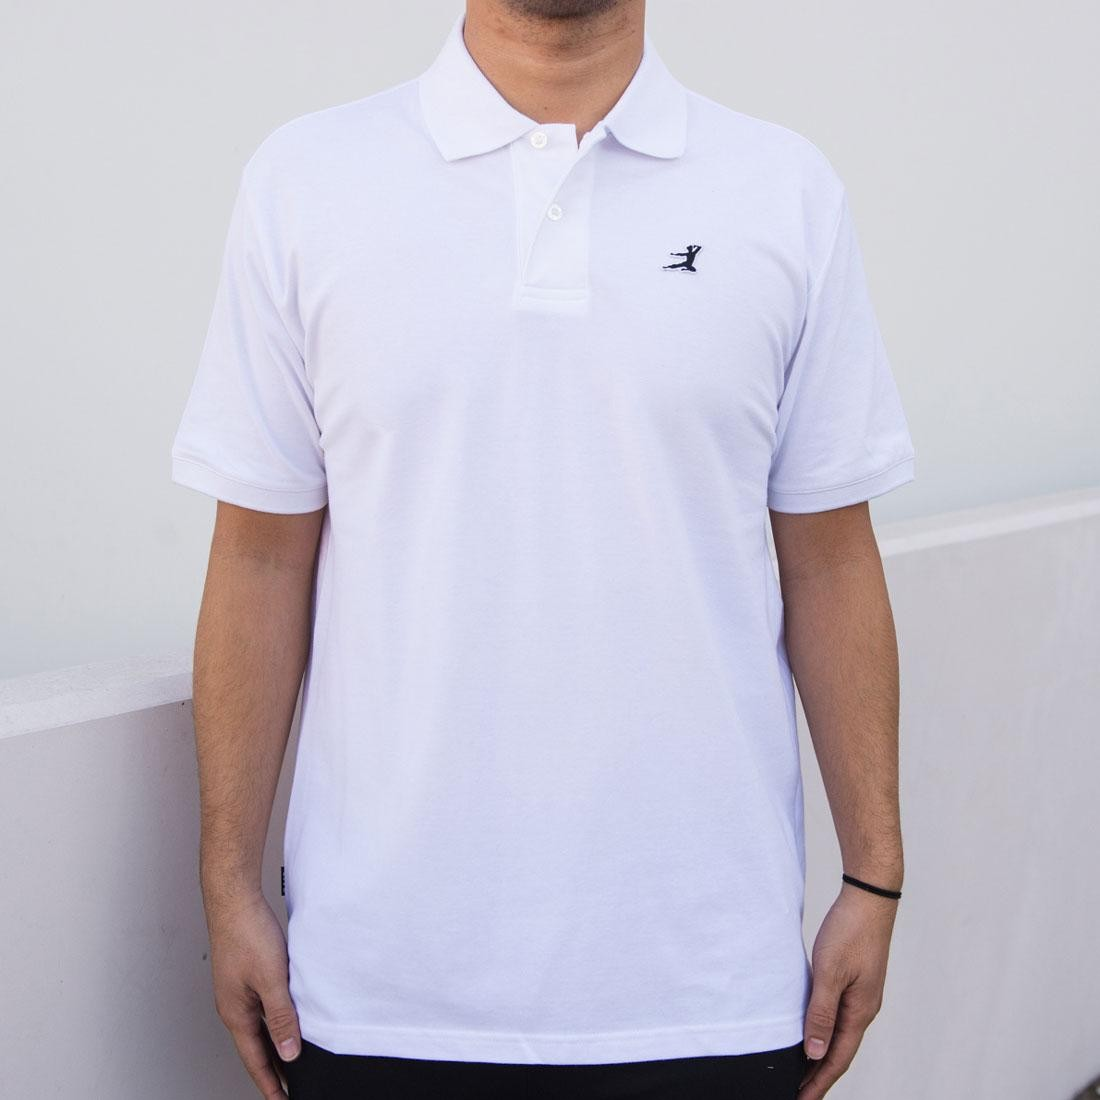 BAIT x Bruce Lee Polo Shirt (white)